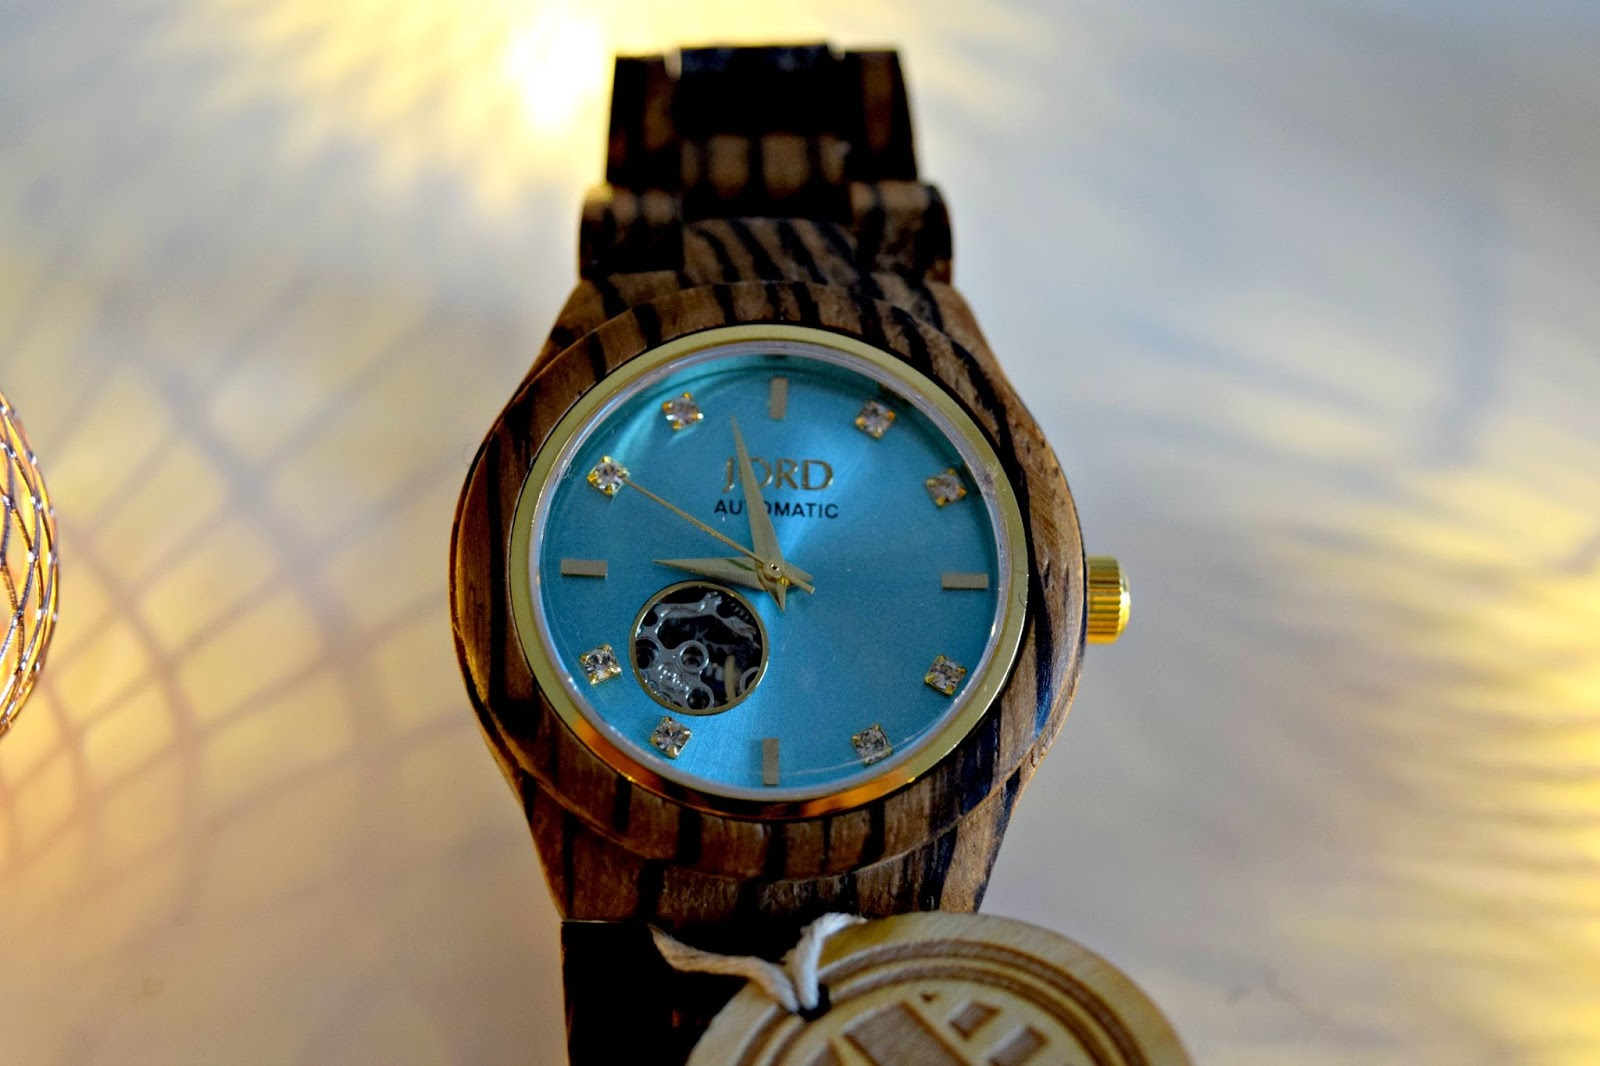 Zebrawood and Turquoise Wood Watch By Jord